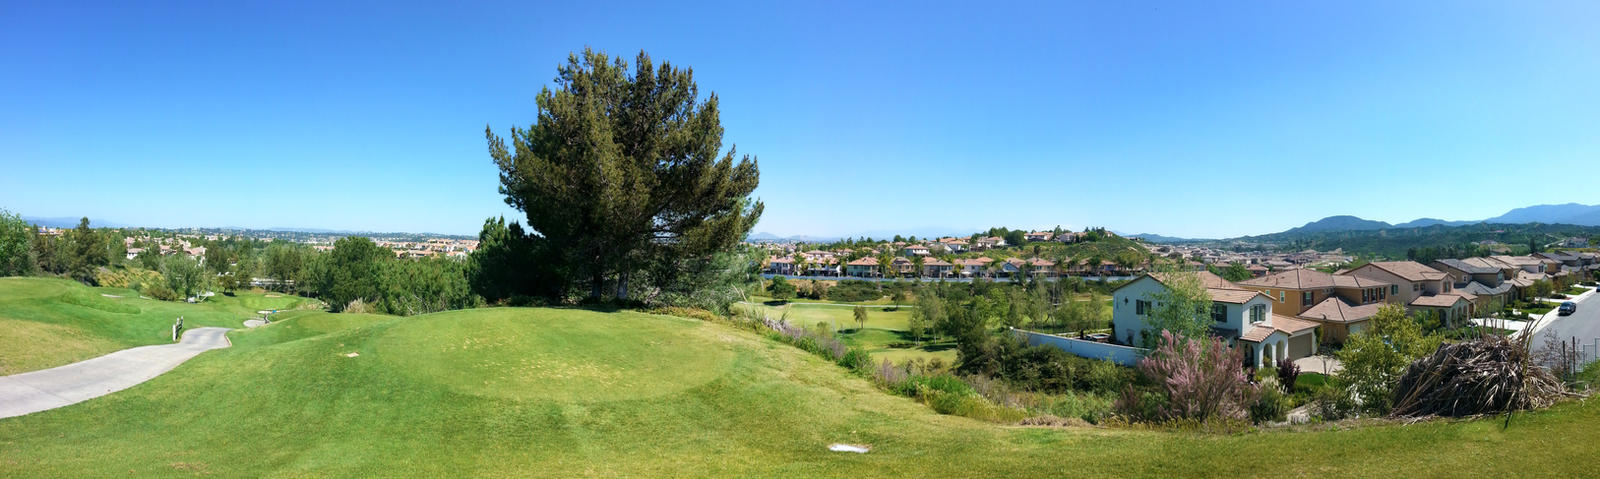 Redhawk Golf Club Panorama by Dr-Pen